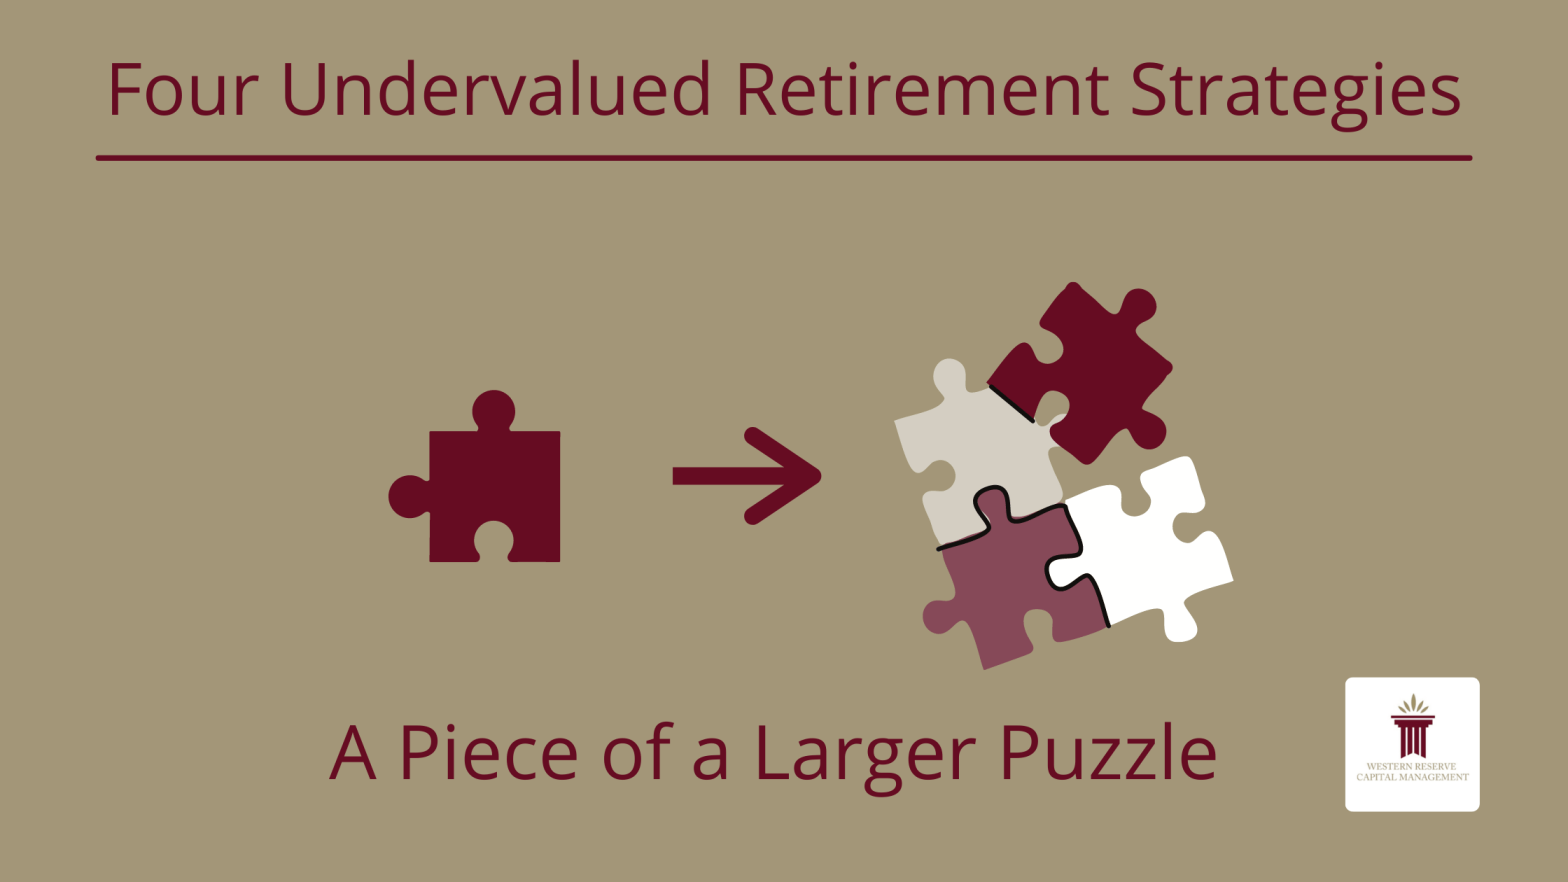 Four Undervalued Retirement Strategies